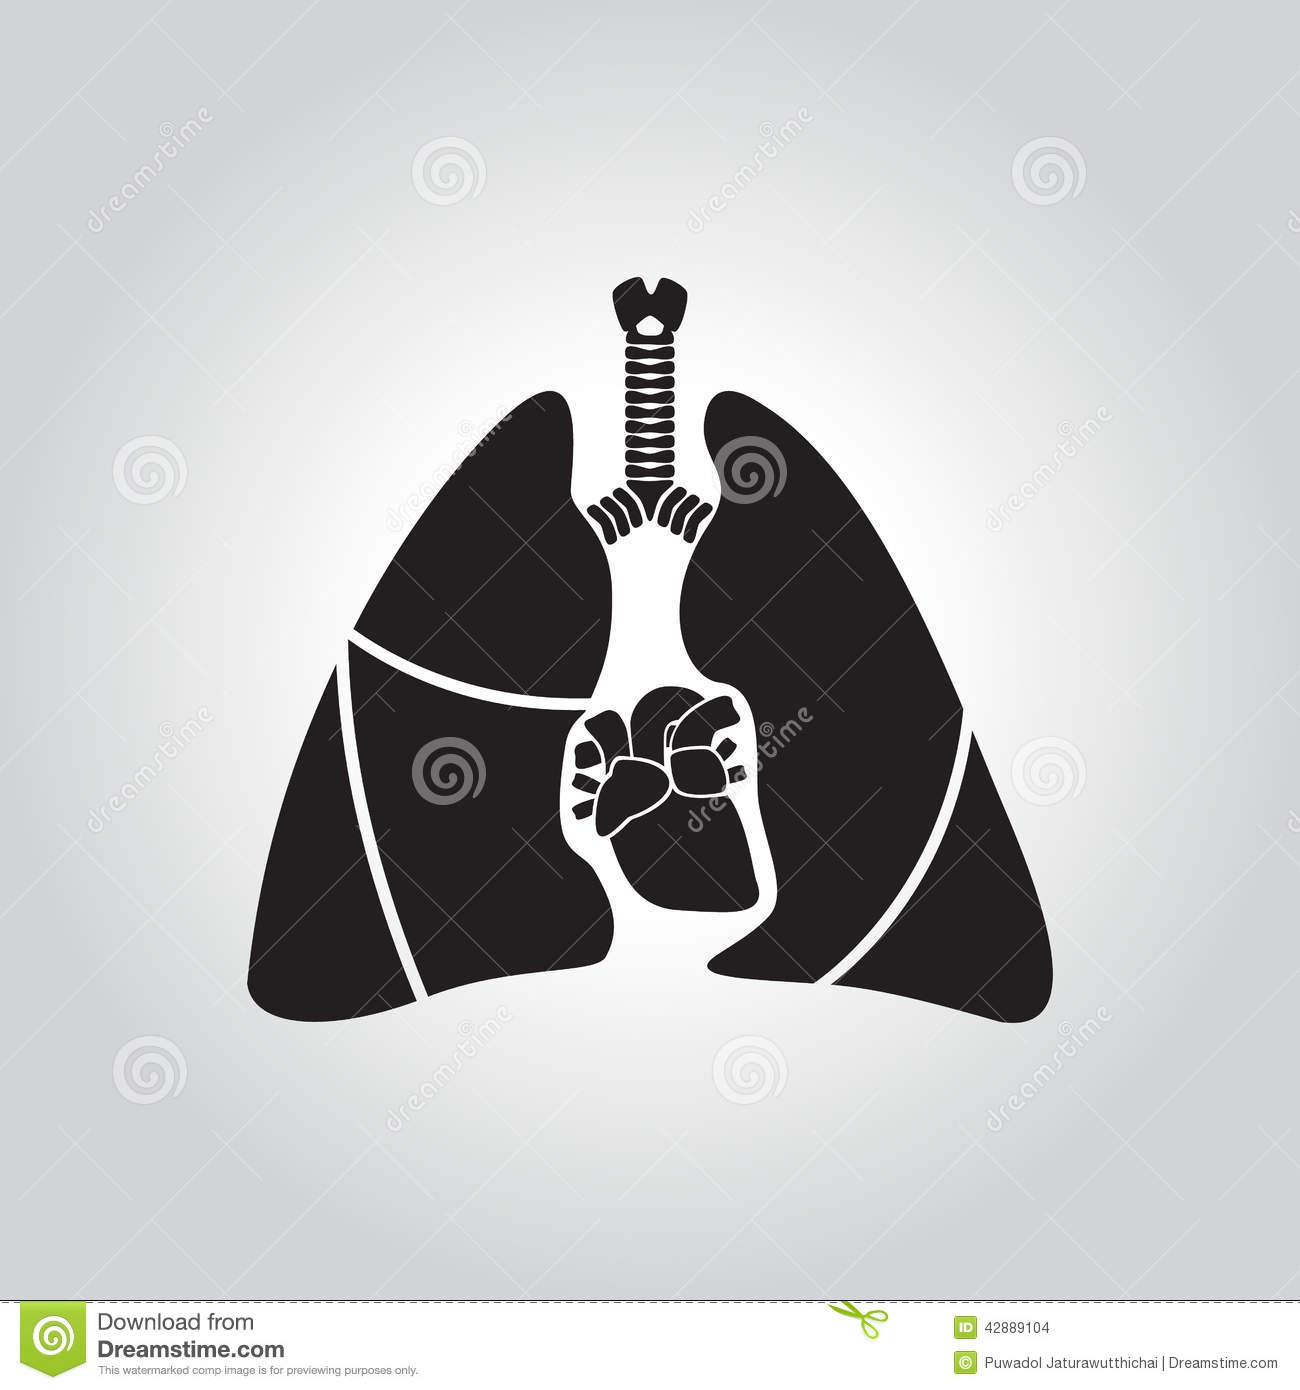 Heart and lung icon stock vector. Illustration of artery - 42889104